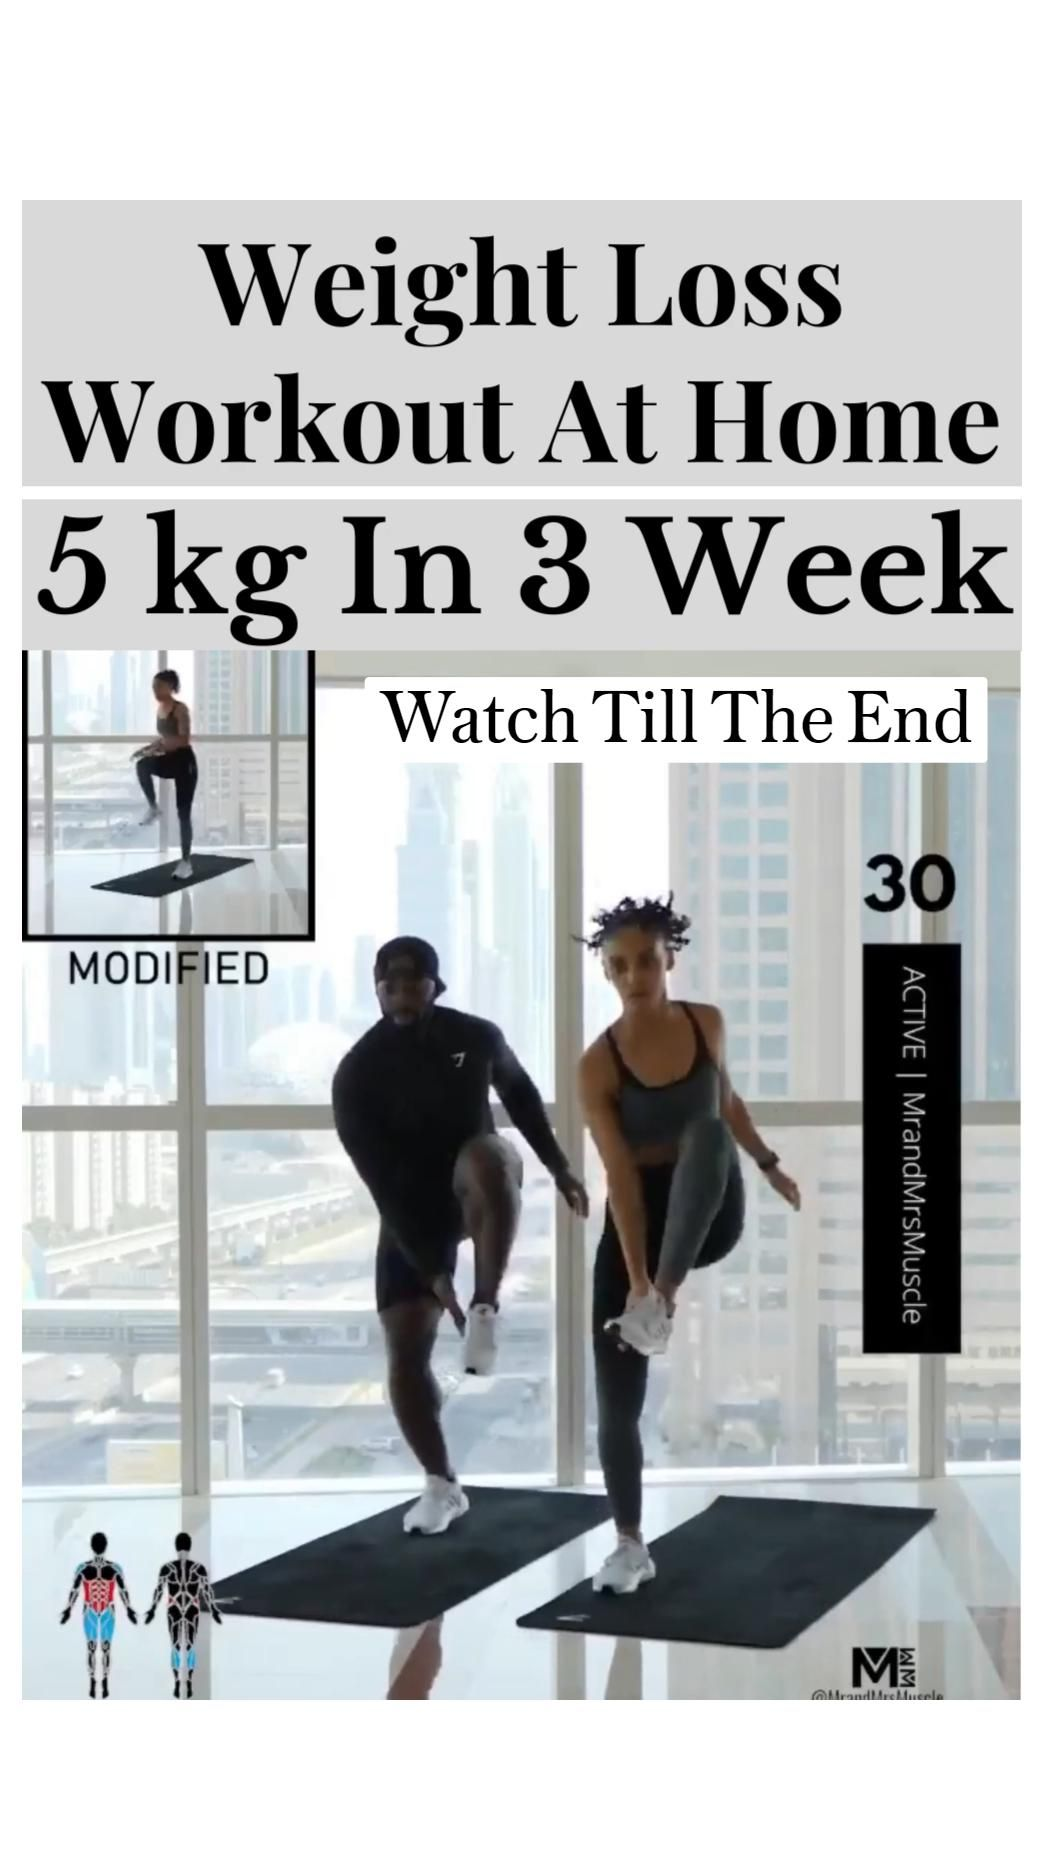 Weight Loss Workout at Home ||